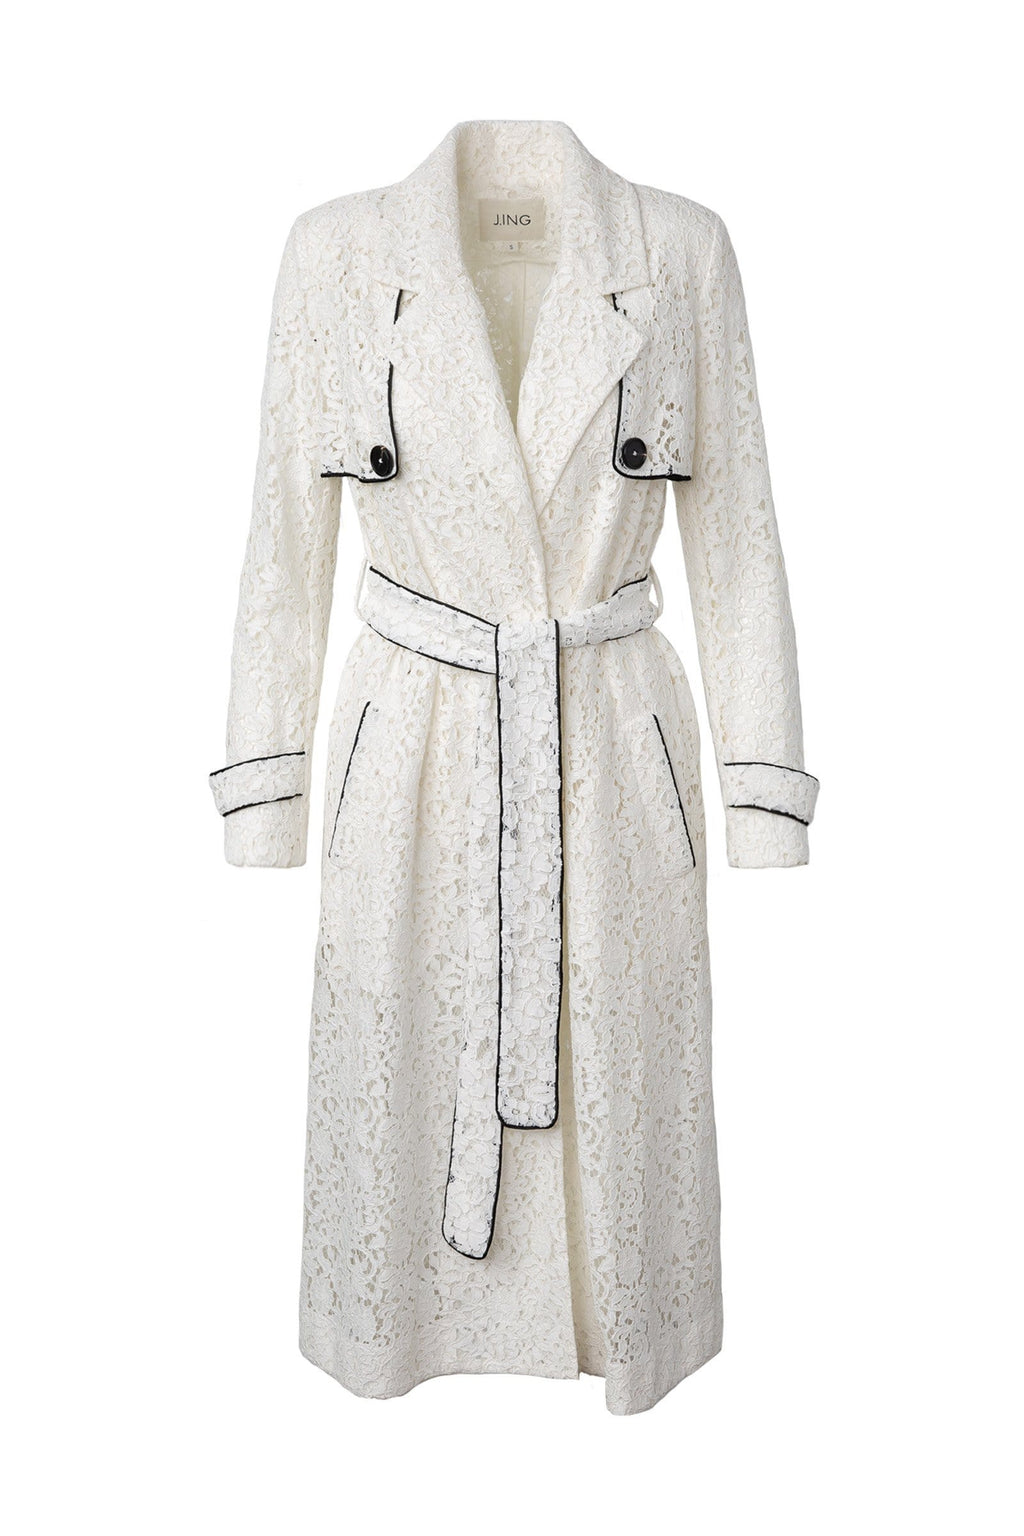 Scarlet Trench Coat by J.ING women's clothing